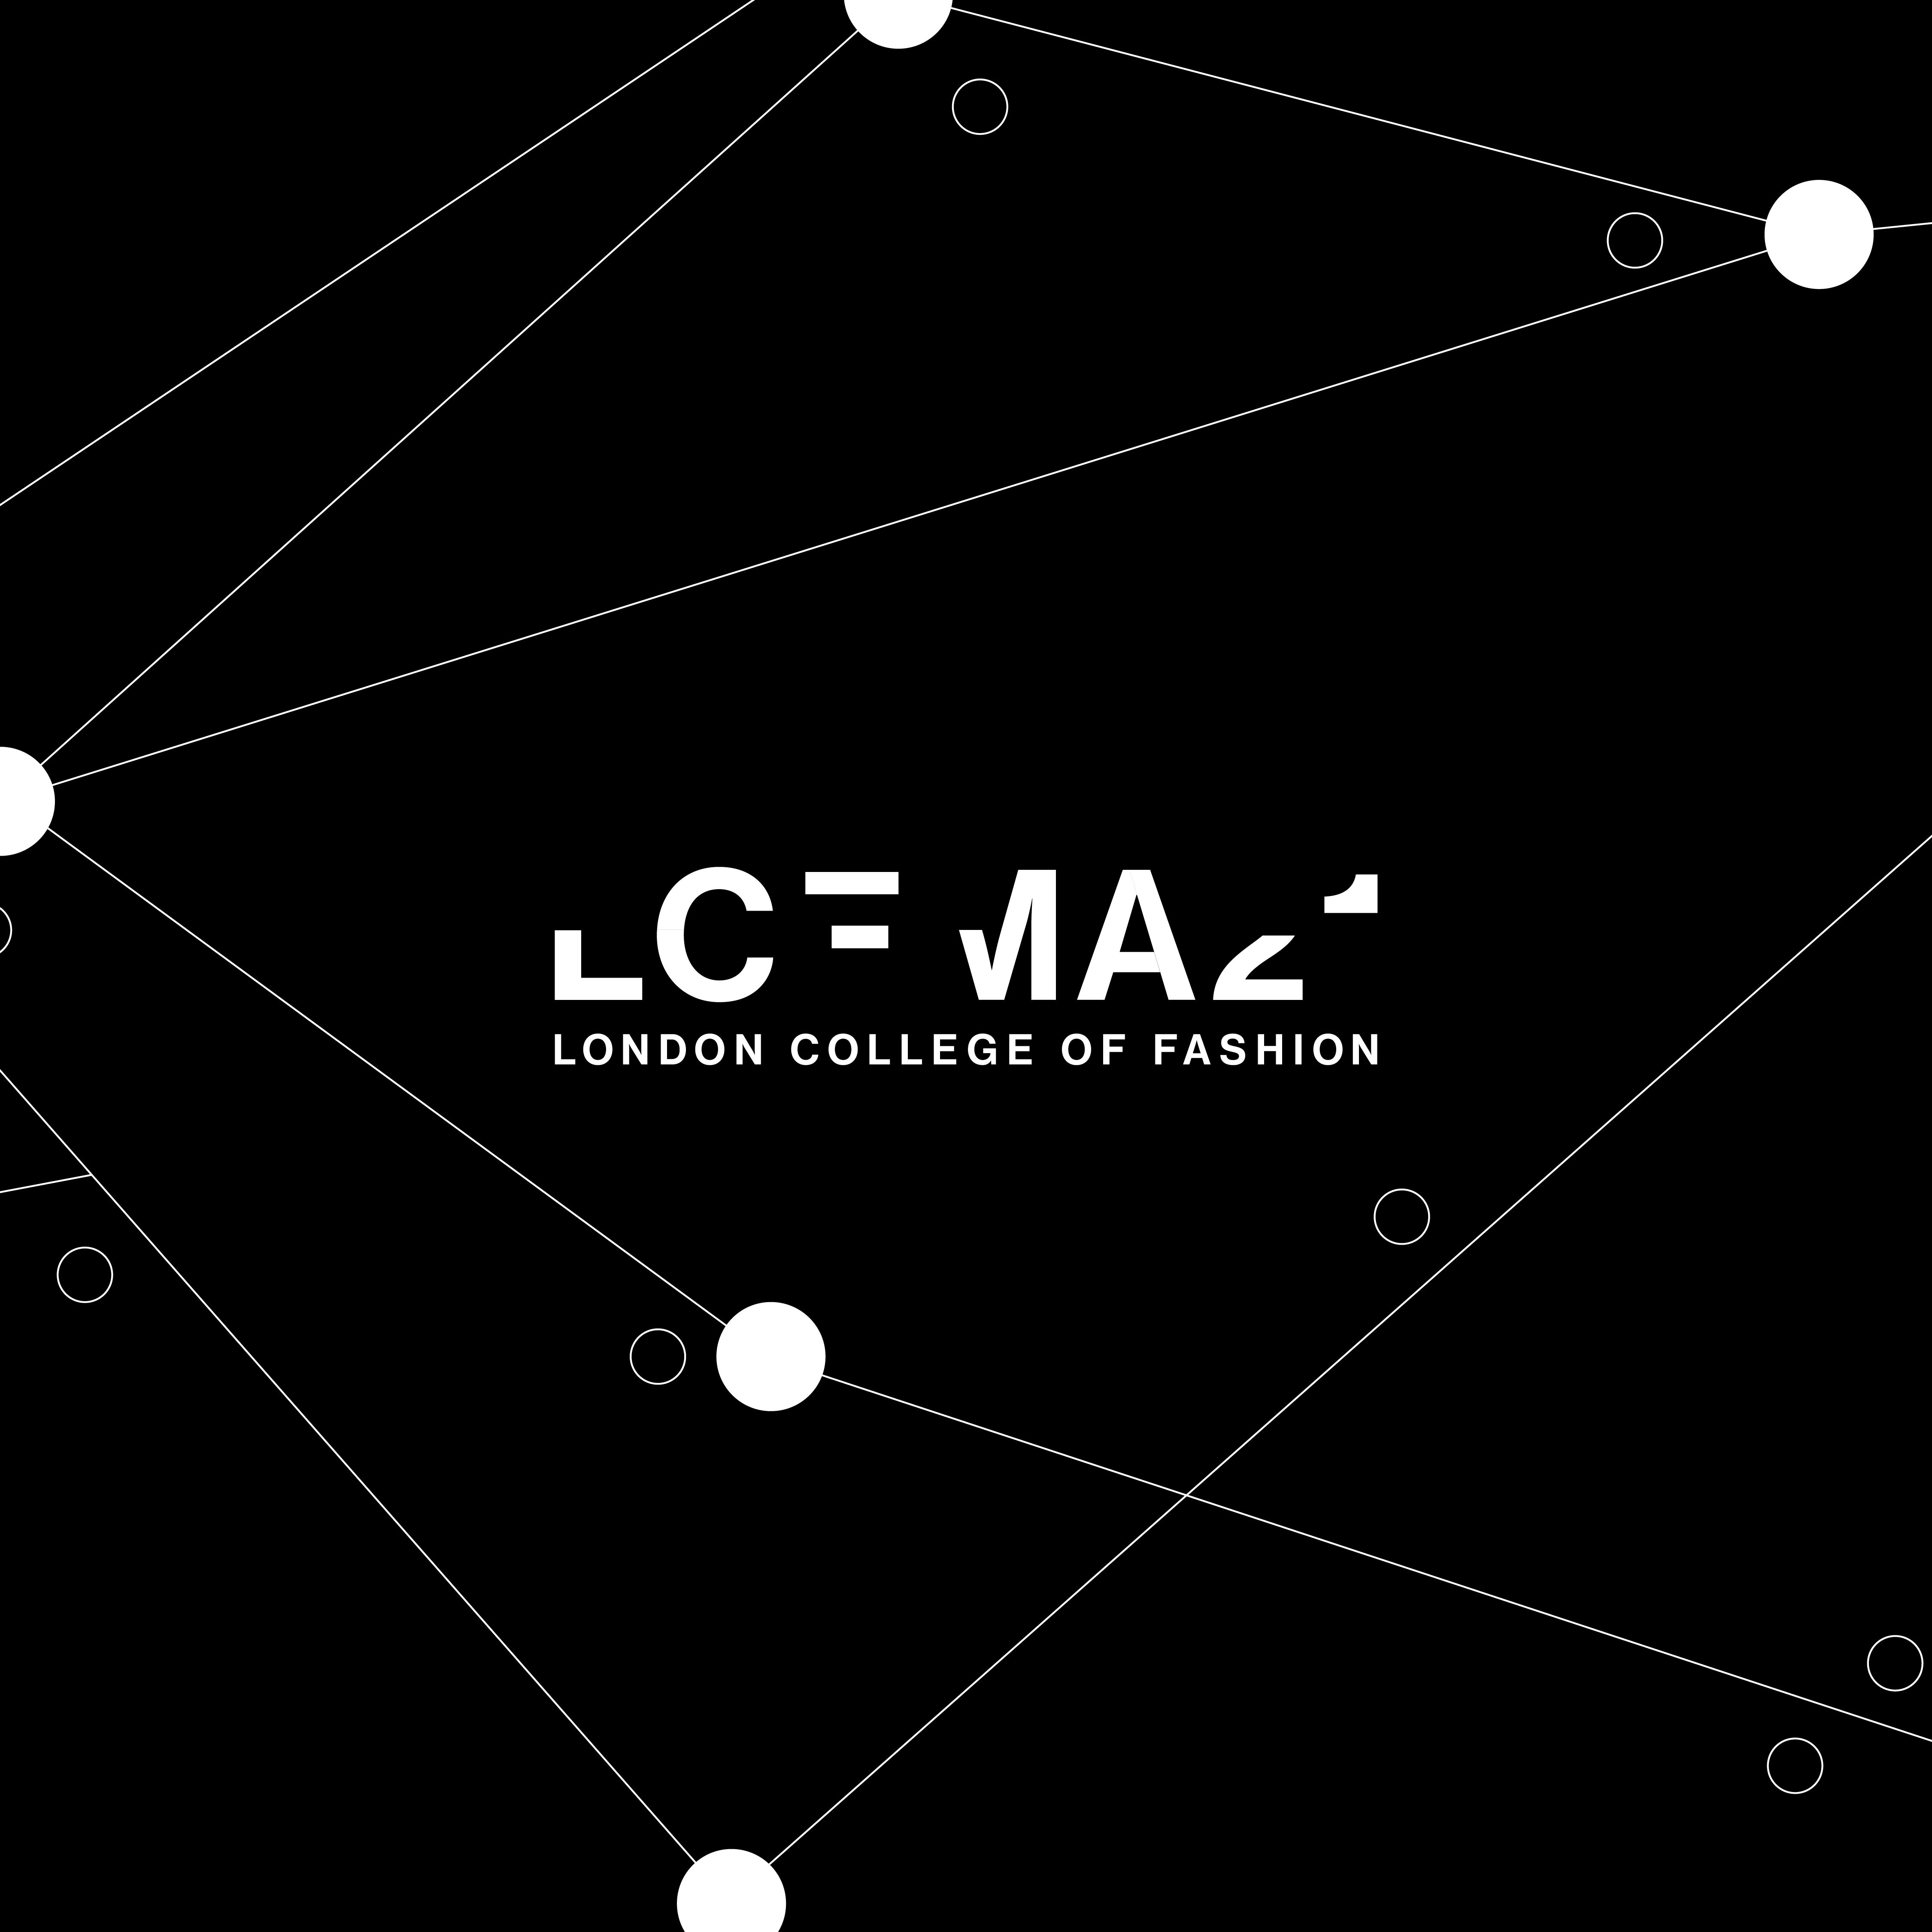 LCFMA21 written in large capital text on top of a black and white decorative pattern